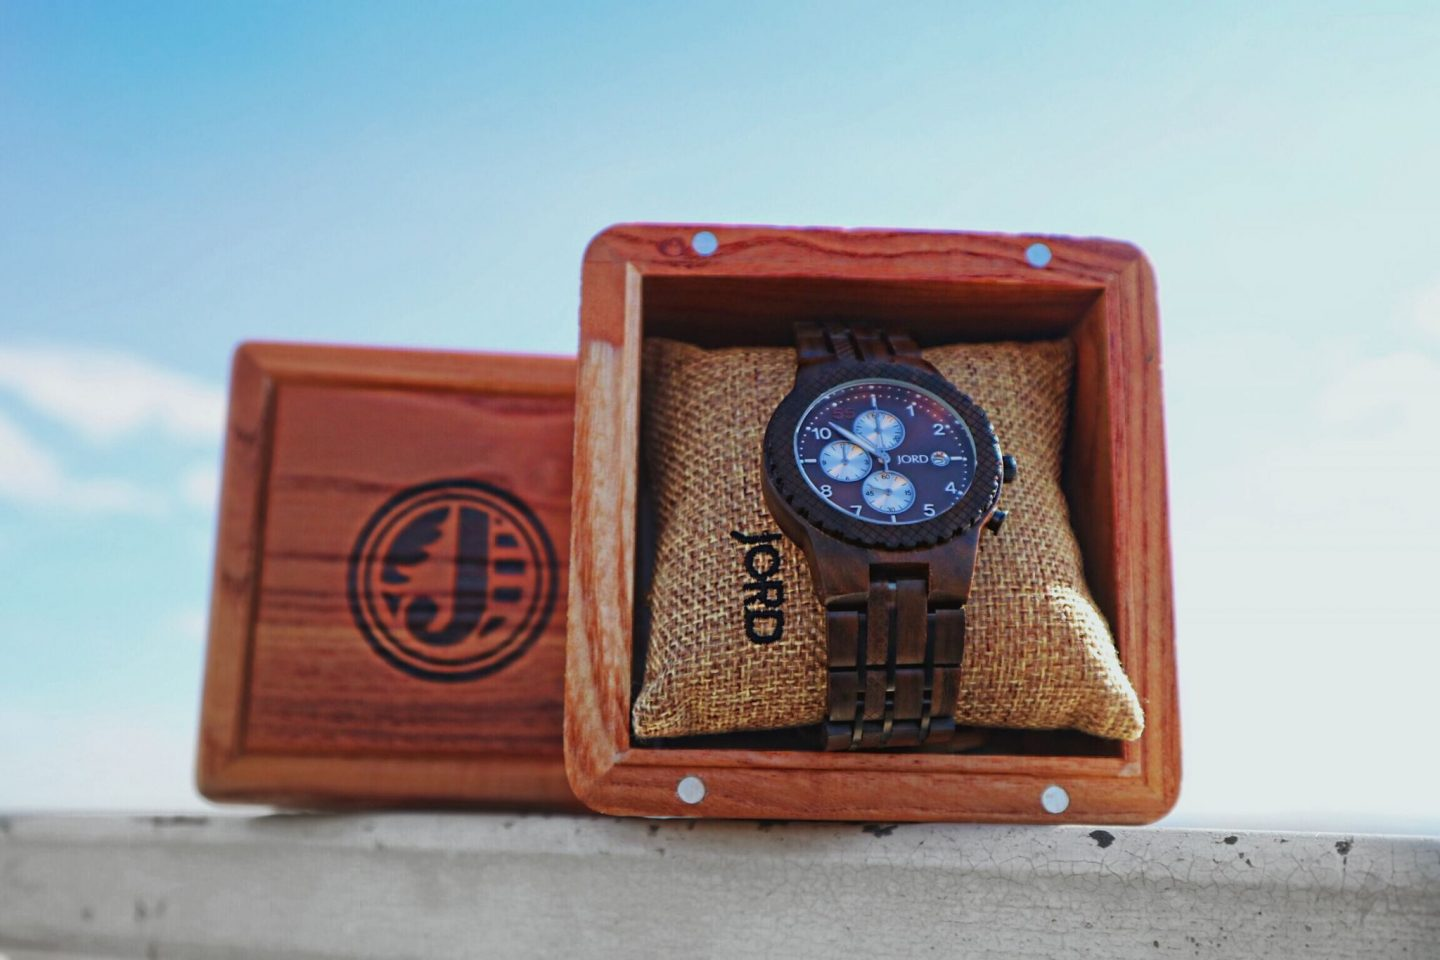 Wooden handmade watch by Jord / Review and Giveaway